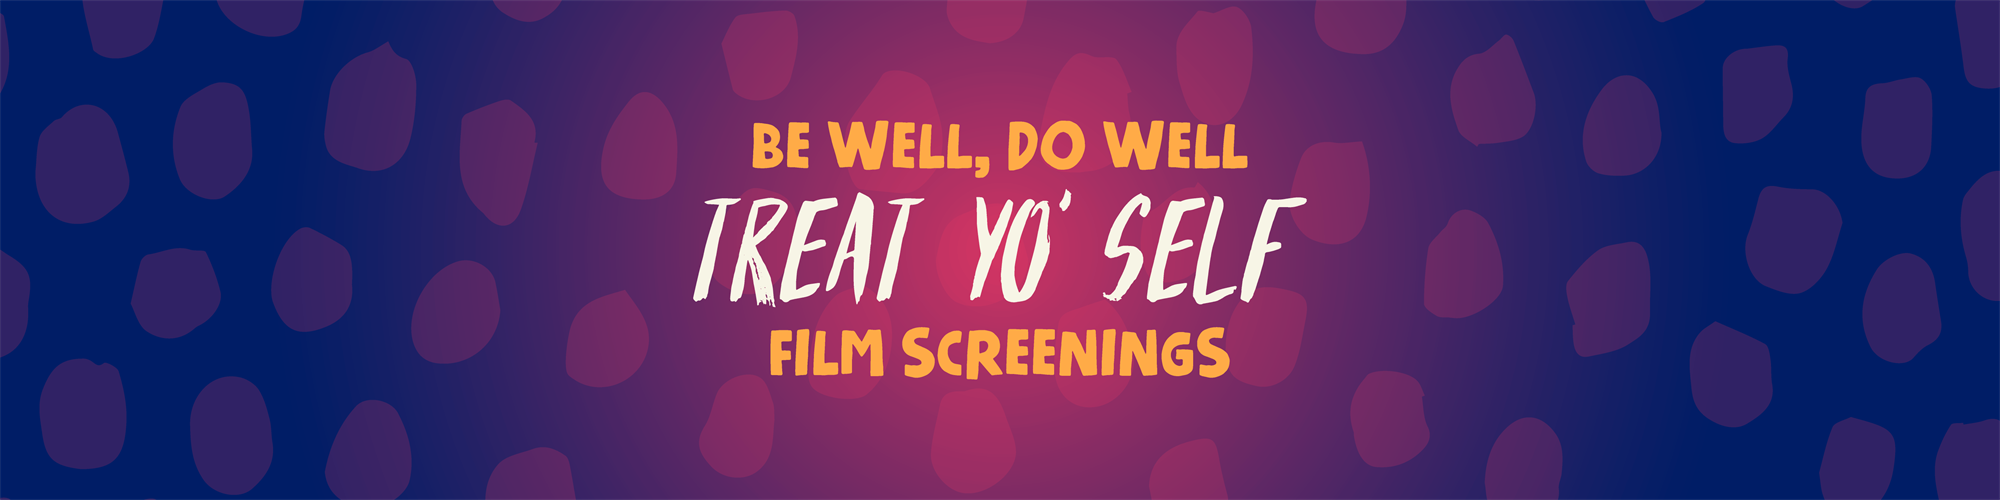 Treat Yo' Self Film Screenings